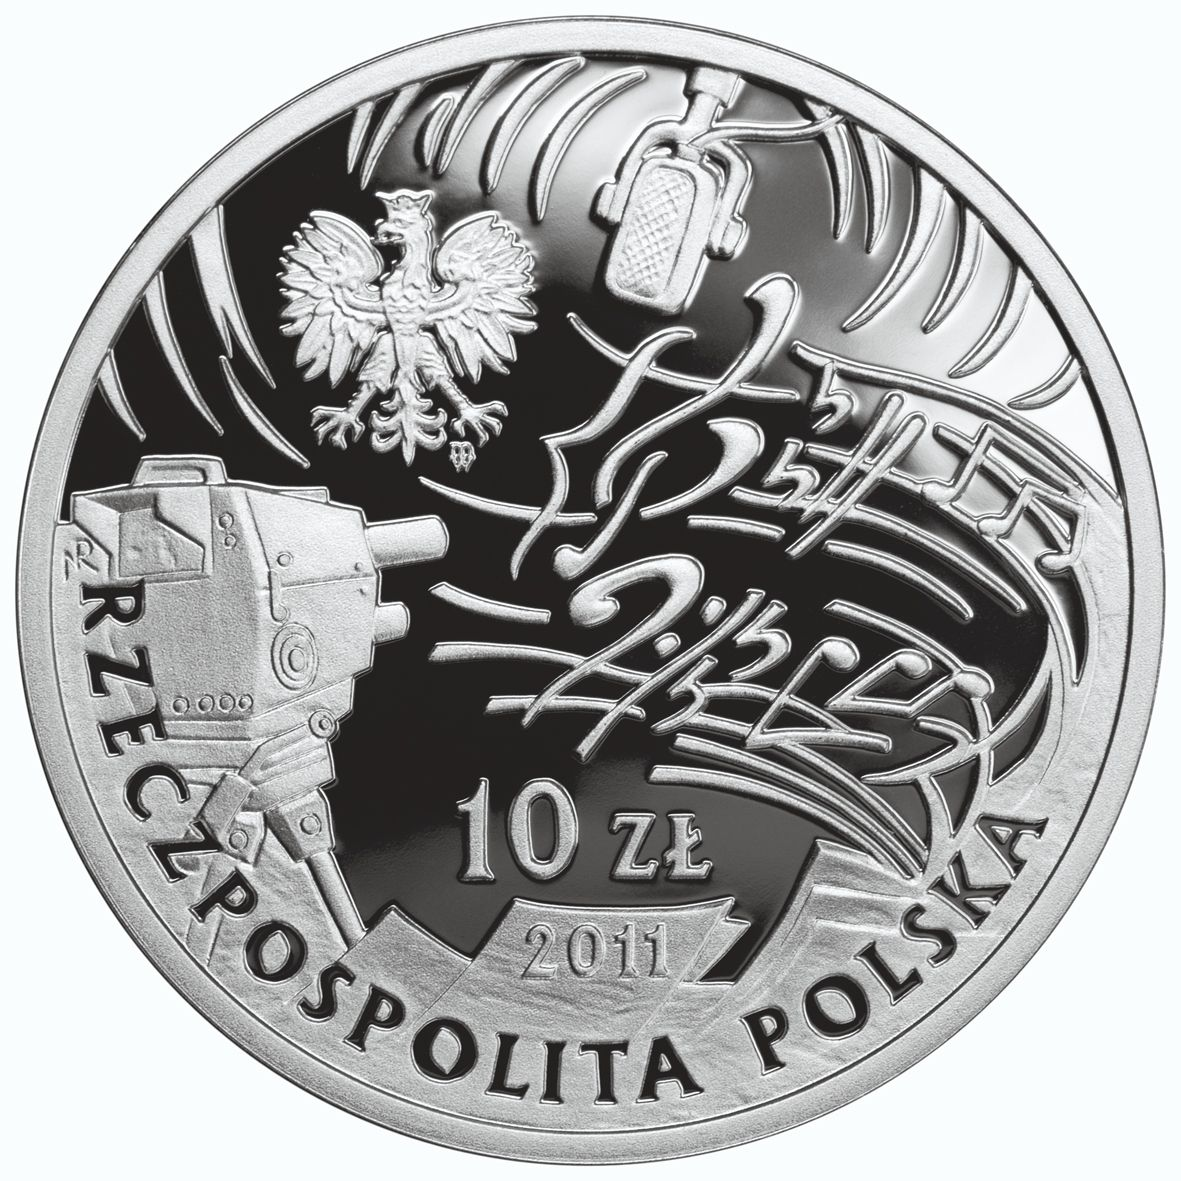 2011 Coin of Poland Polish 2zl Cities and towns in Poland Lódz